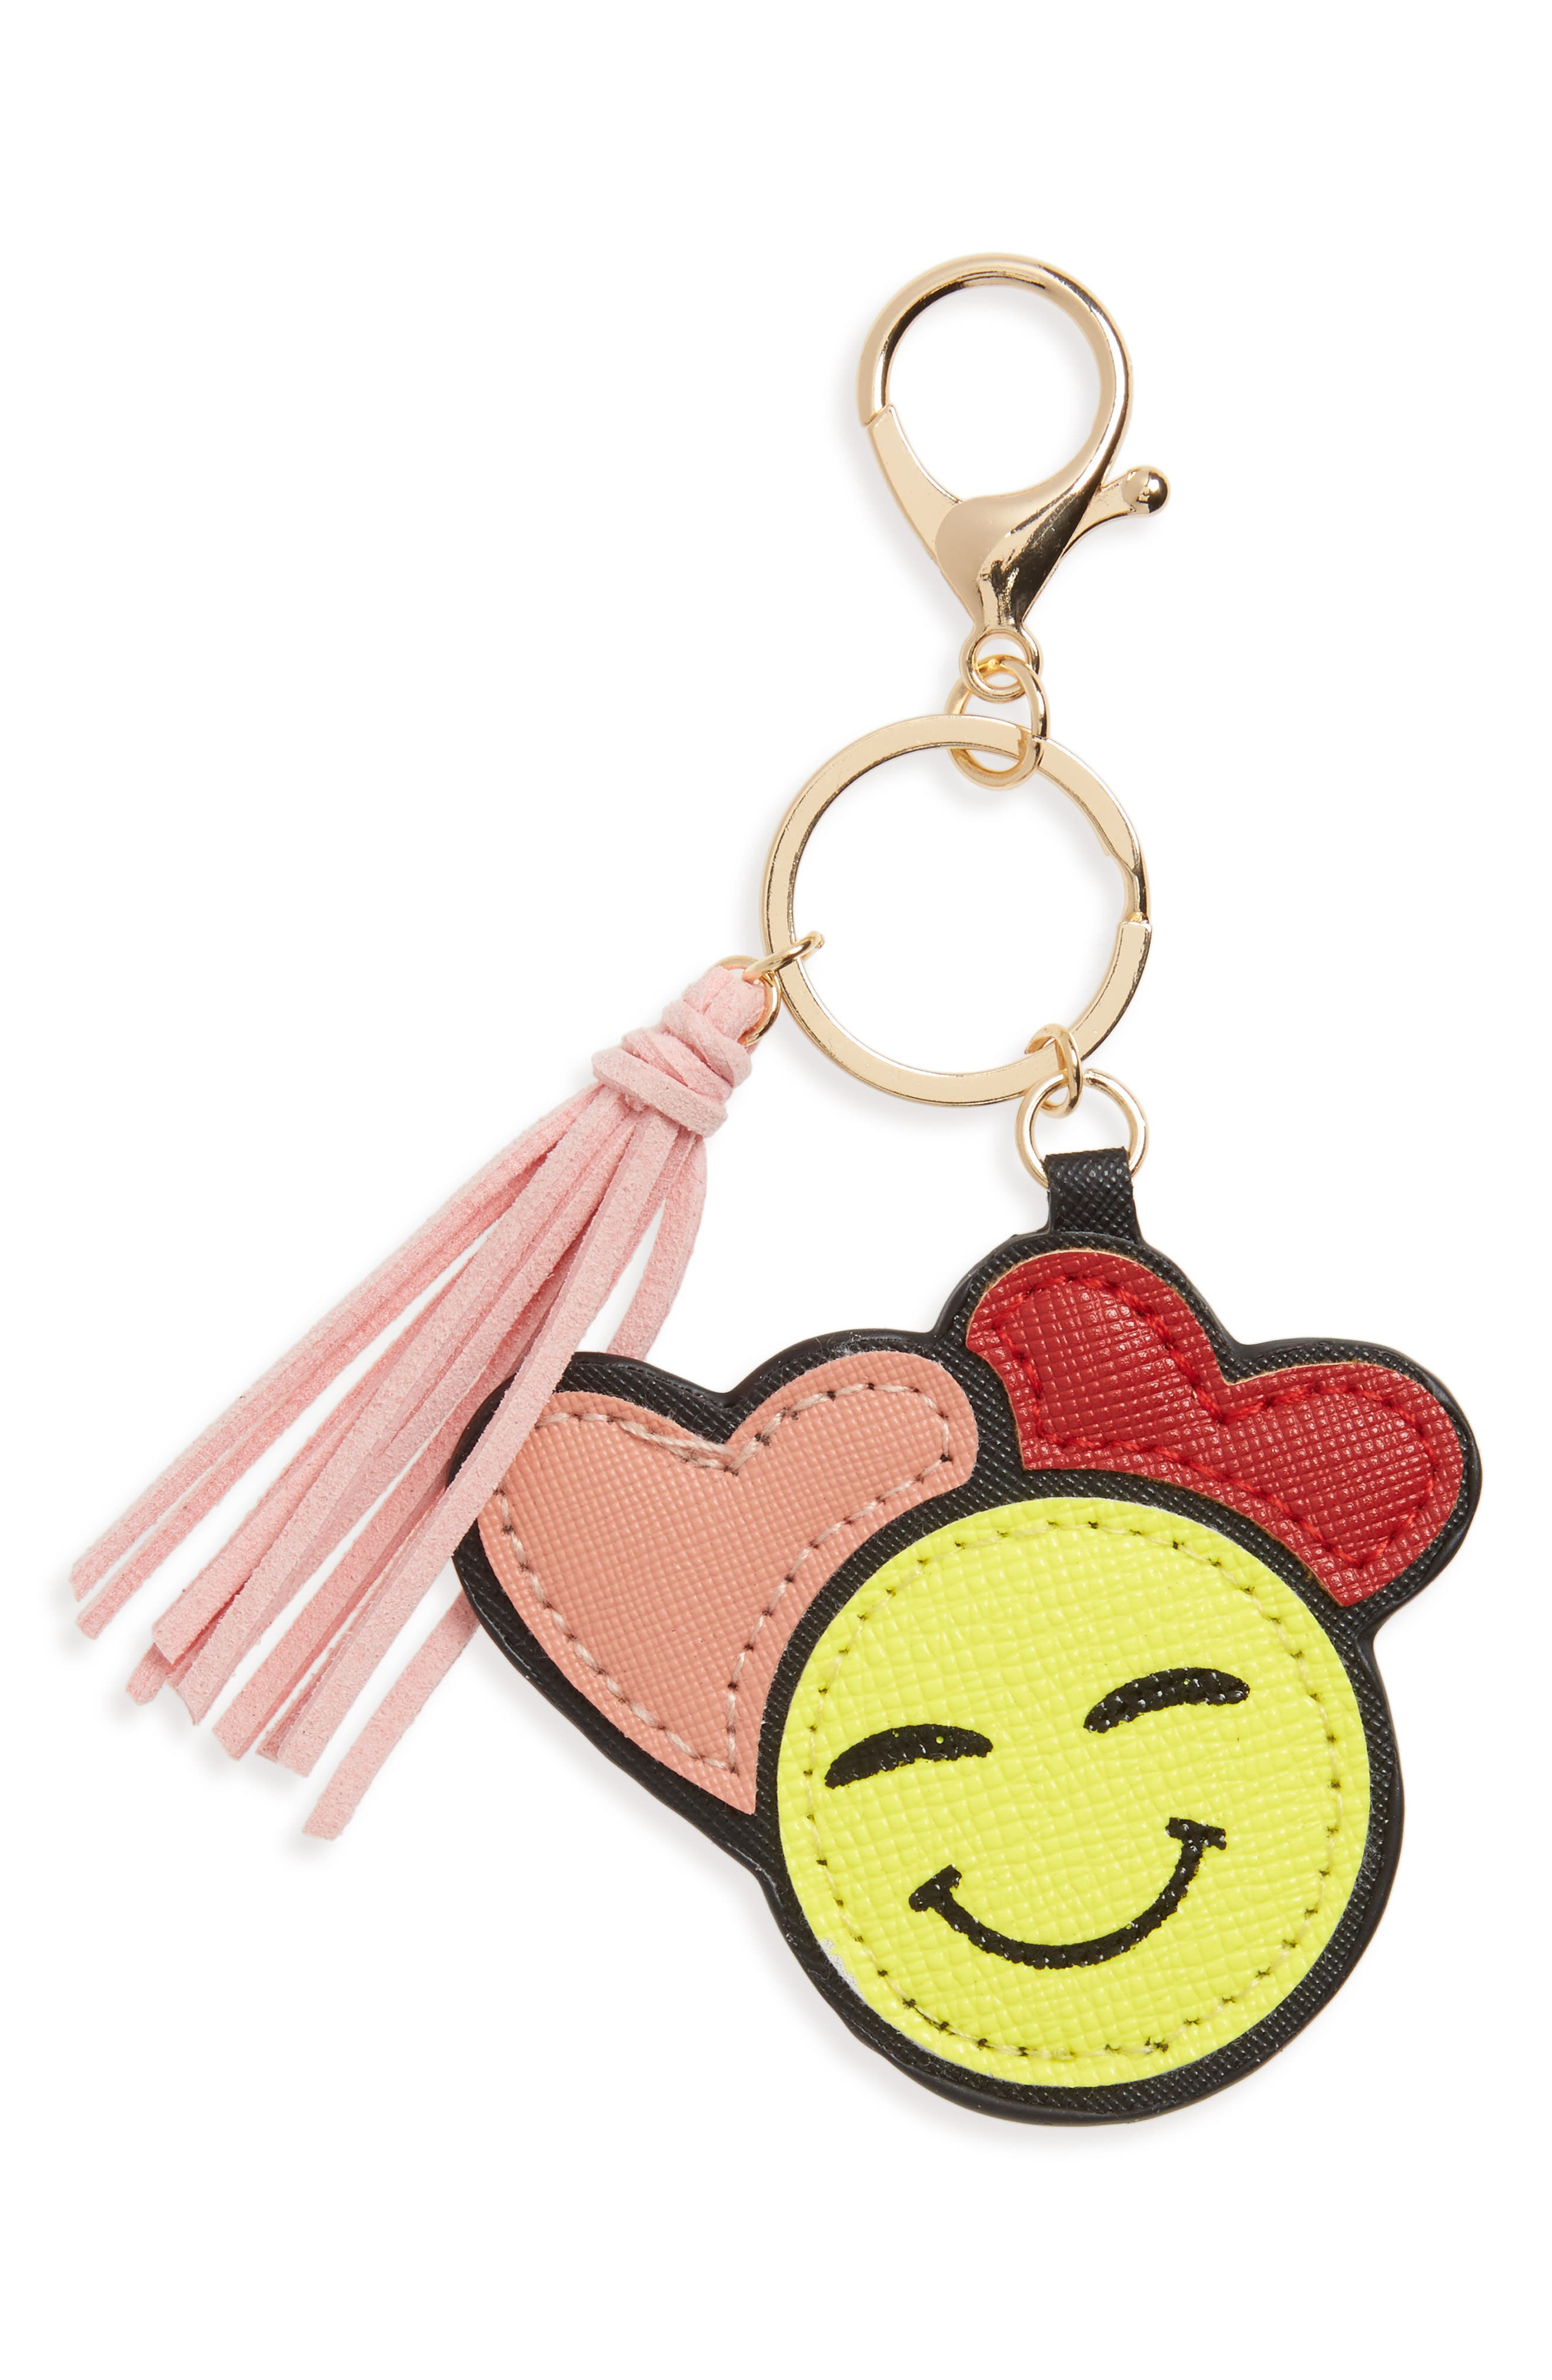 In Love Emoji Key Chain,                             Main thumbnail 1, color,                             Multi